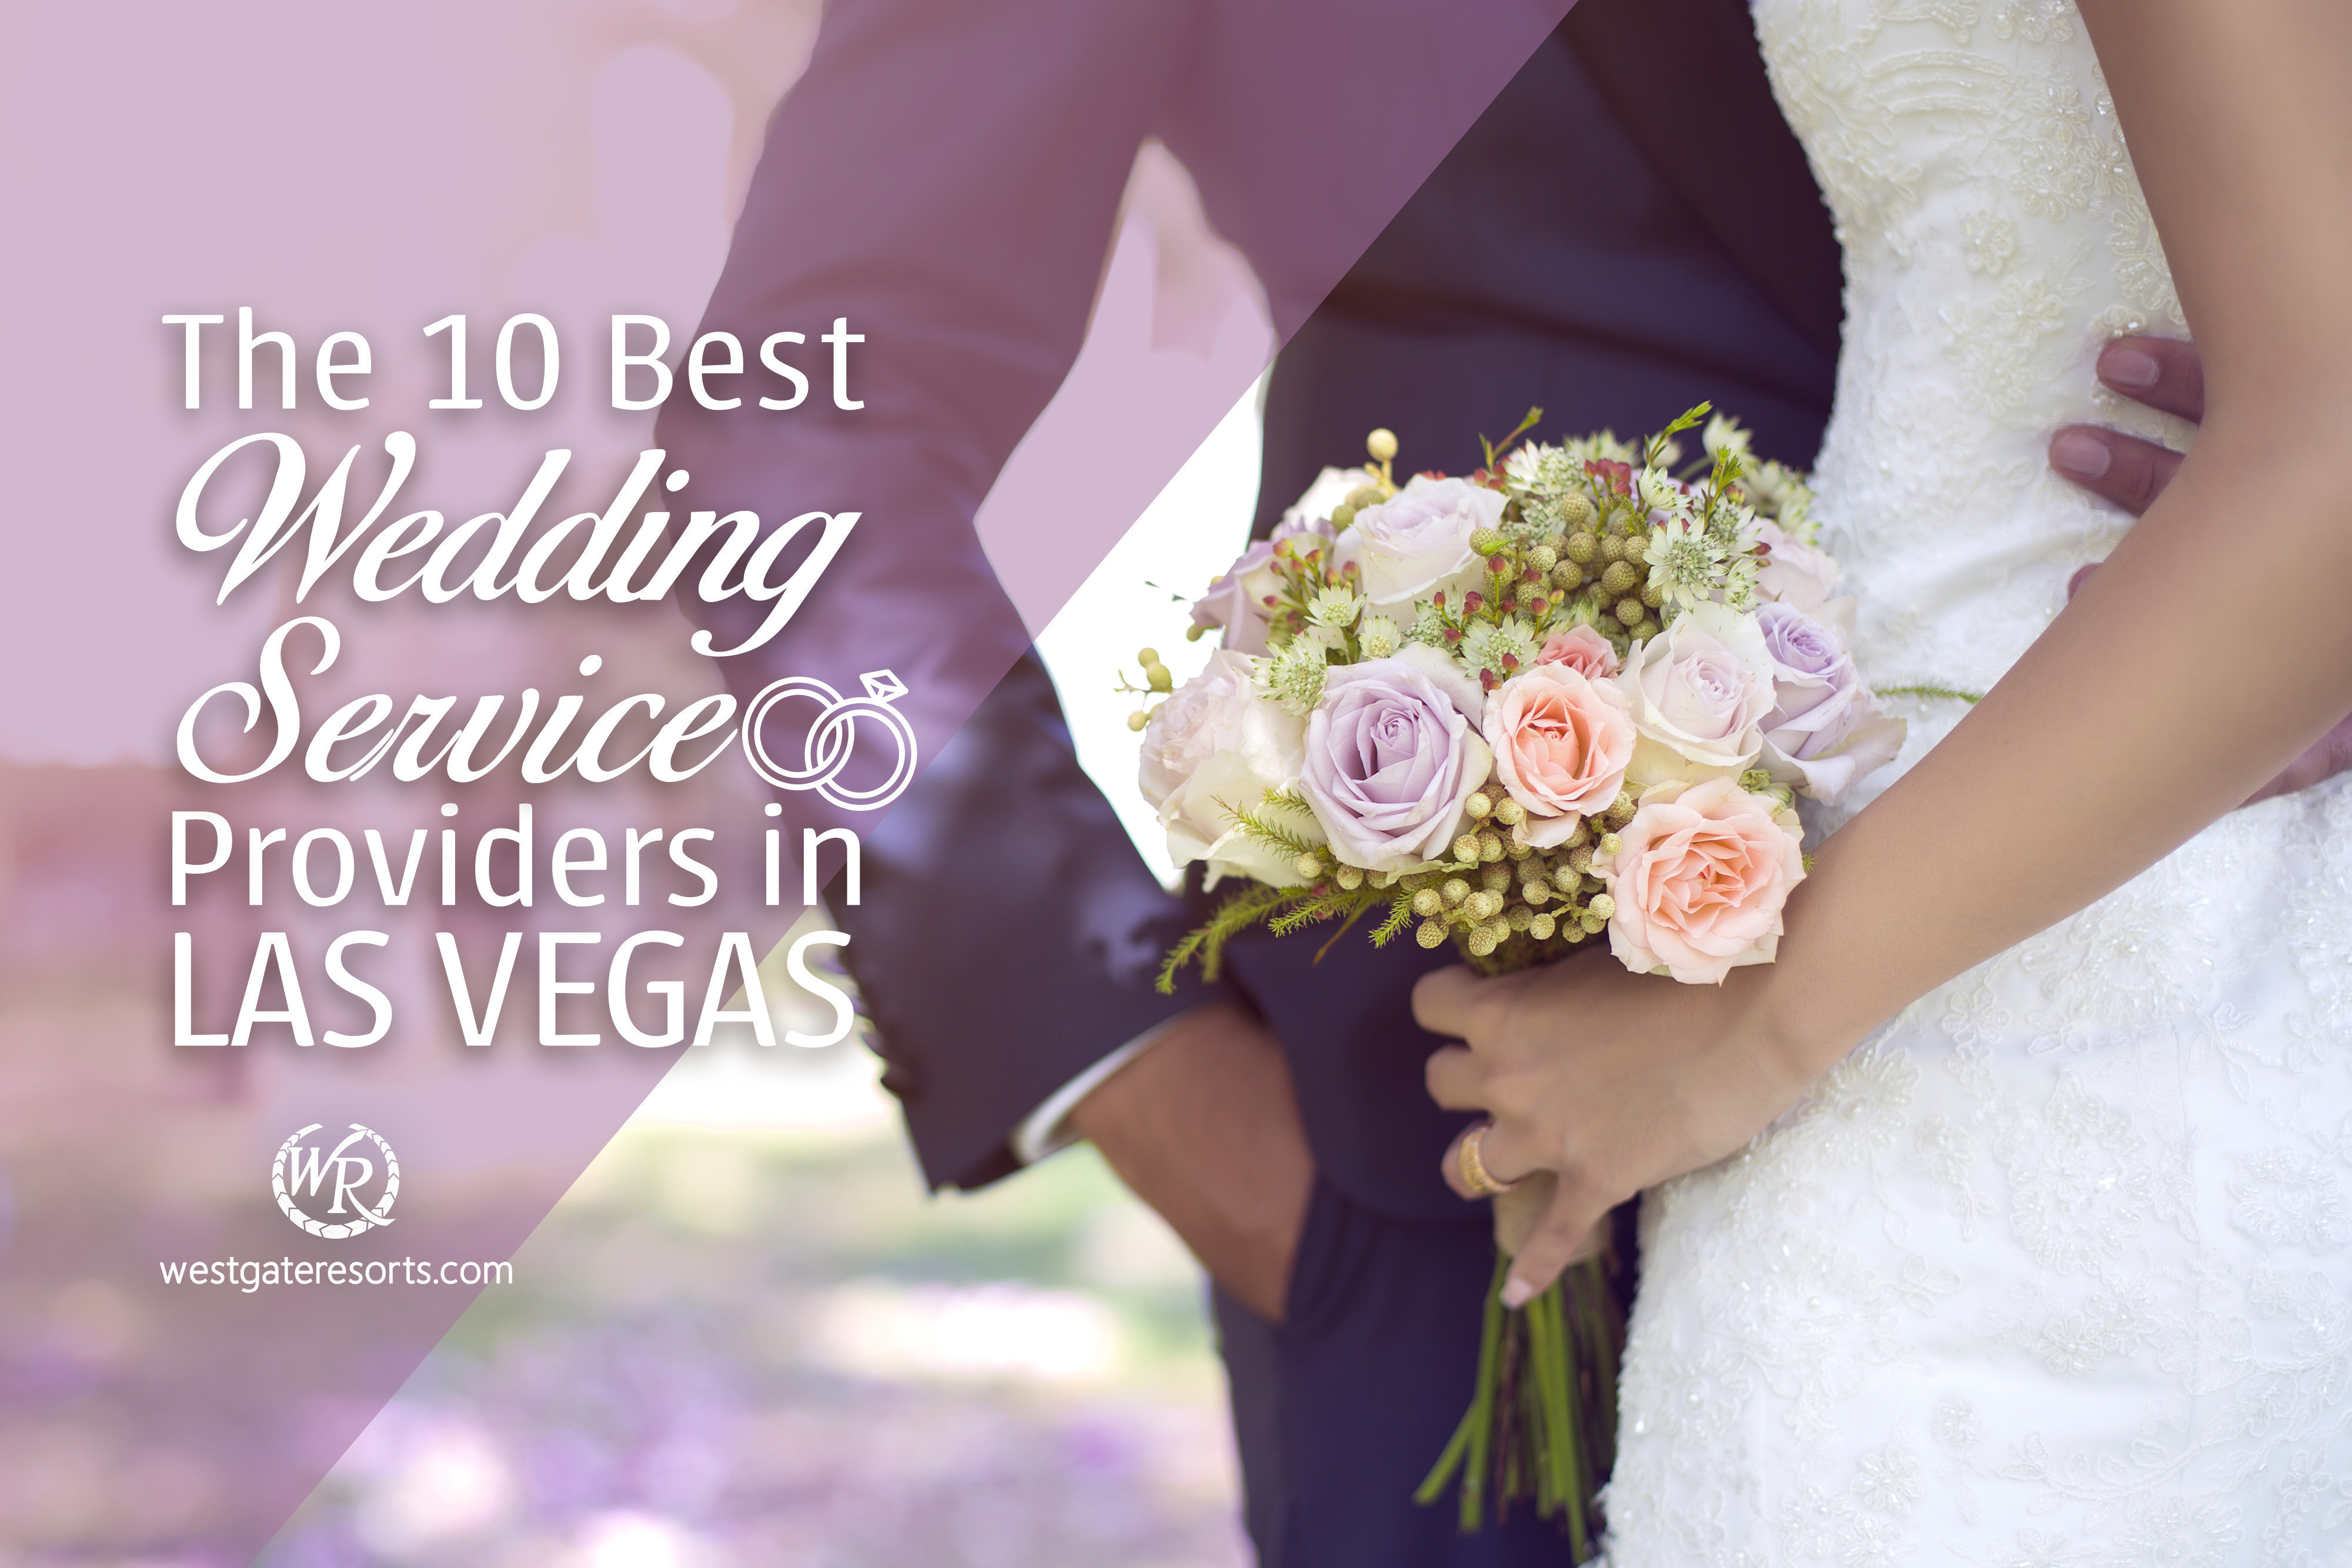 The 10 Best Wedding Service Providers in Las Vegas